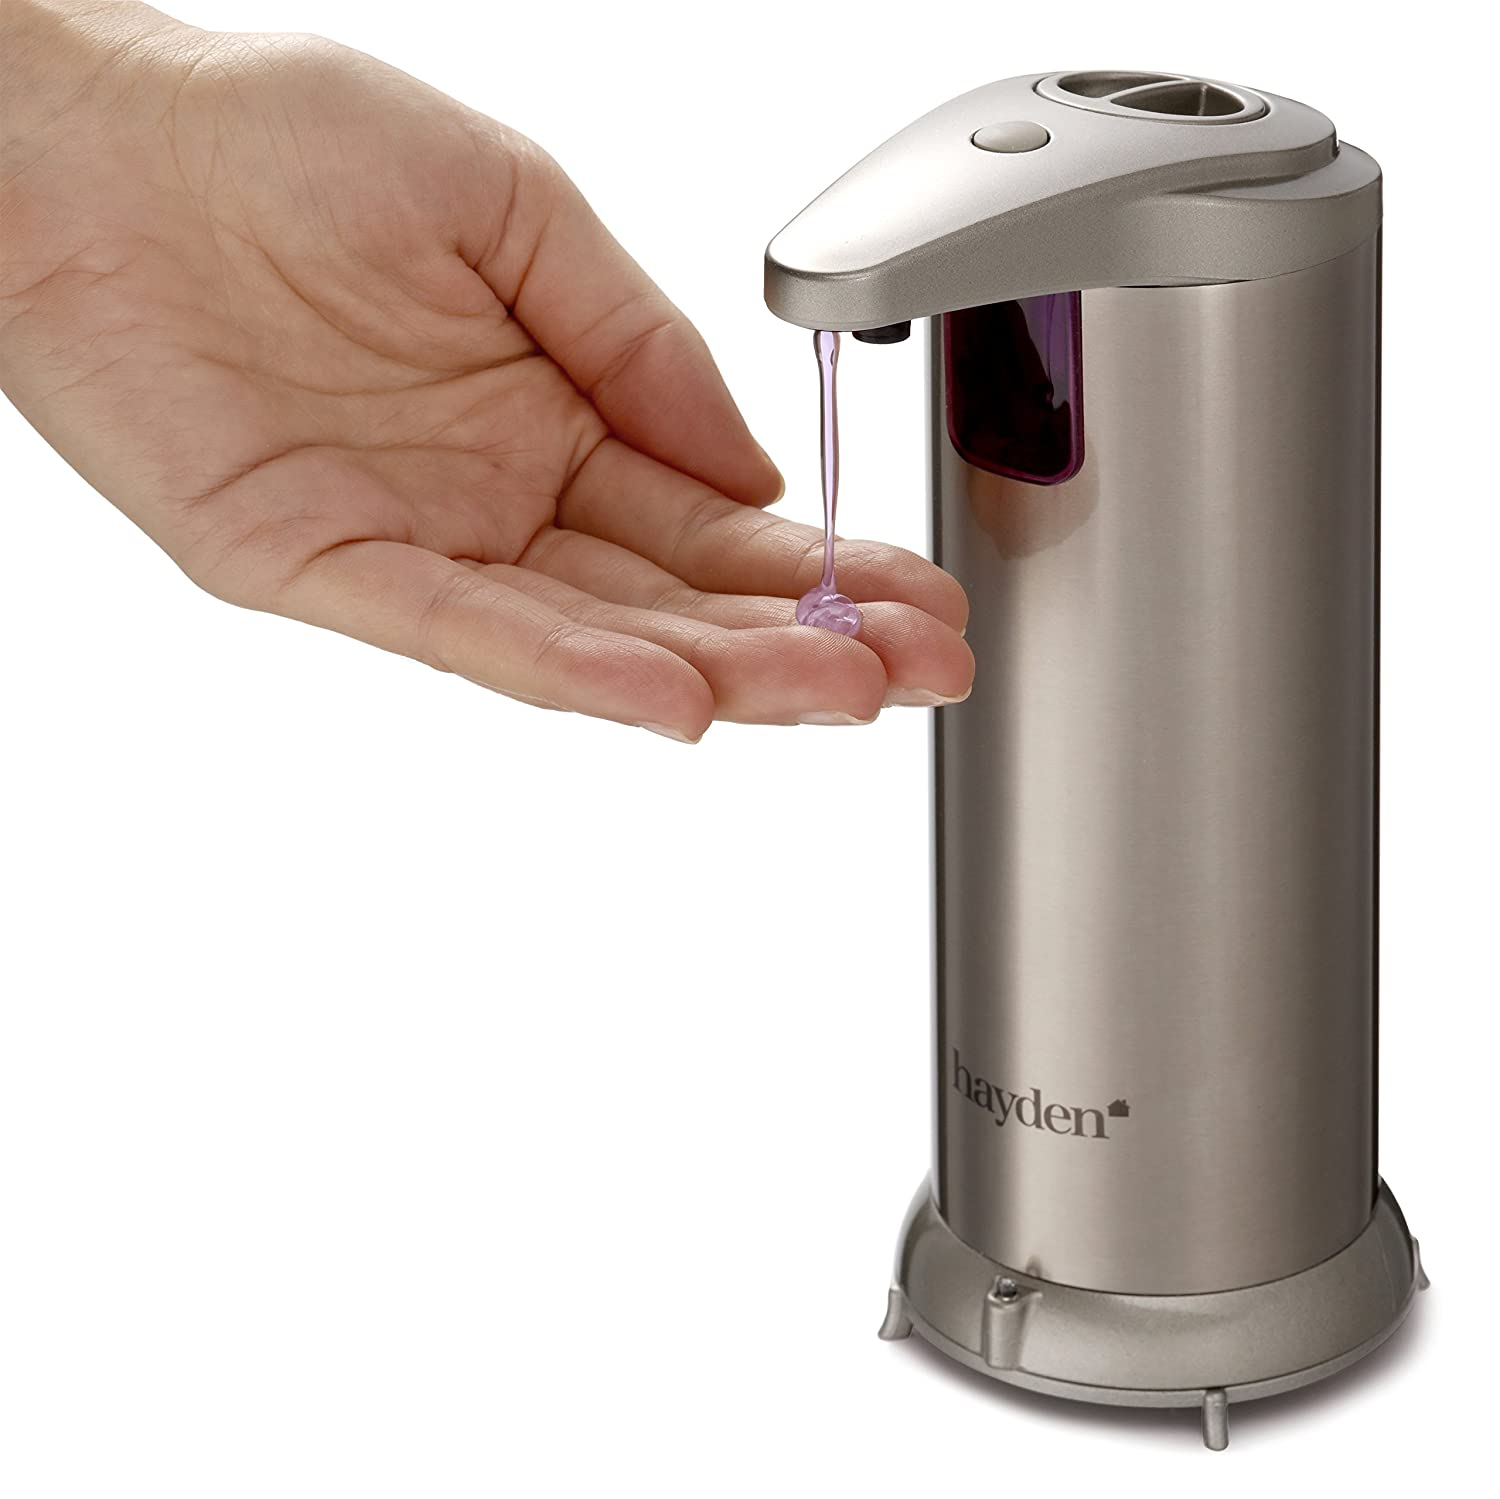 HAYDEN® Premium Automatic Soap Dispenser Touchless -Perfect for Bathroom or Kitchen - Fingerprint Resistant Stainless Steel - Brushed Nickel